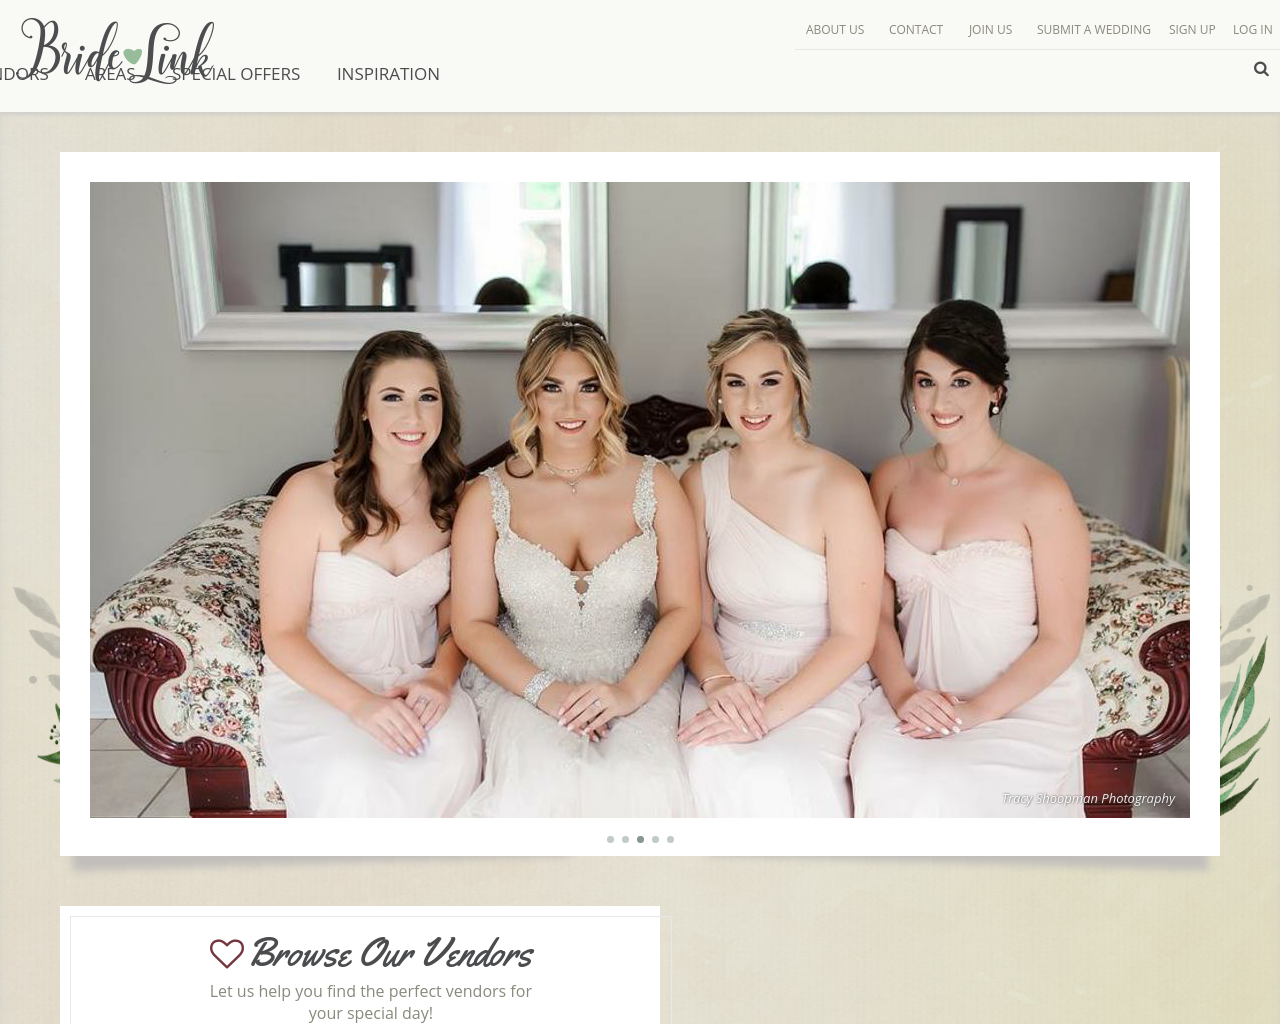 The-Bride-Link-Advertising-Reviews-Pricing